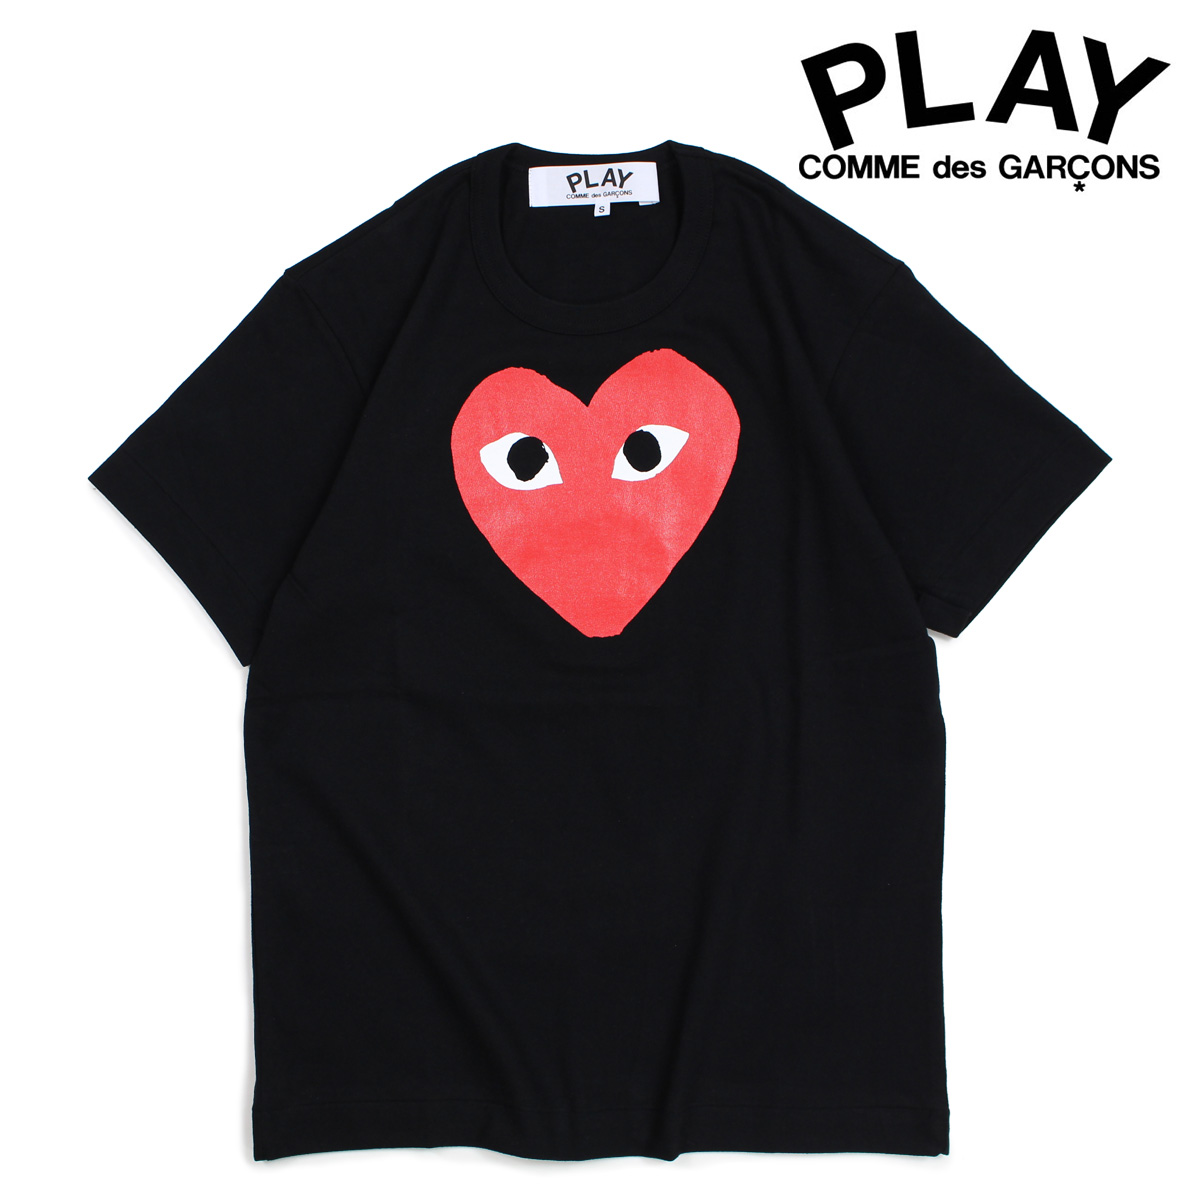 COMME des GARCONS PLAY Tシャツ 半袖 コムデギャルソン メンズ RED HEART T-SHIRT ブラック AZT112